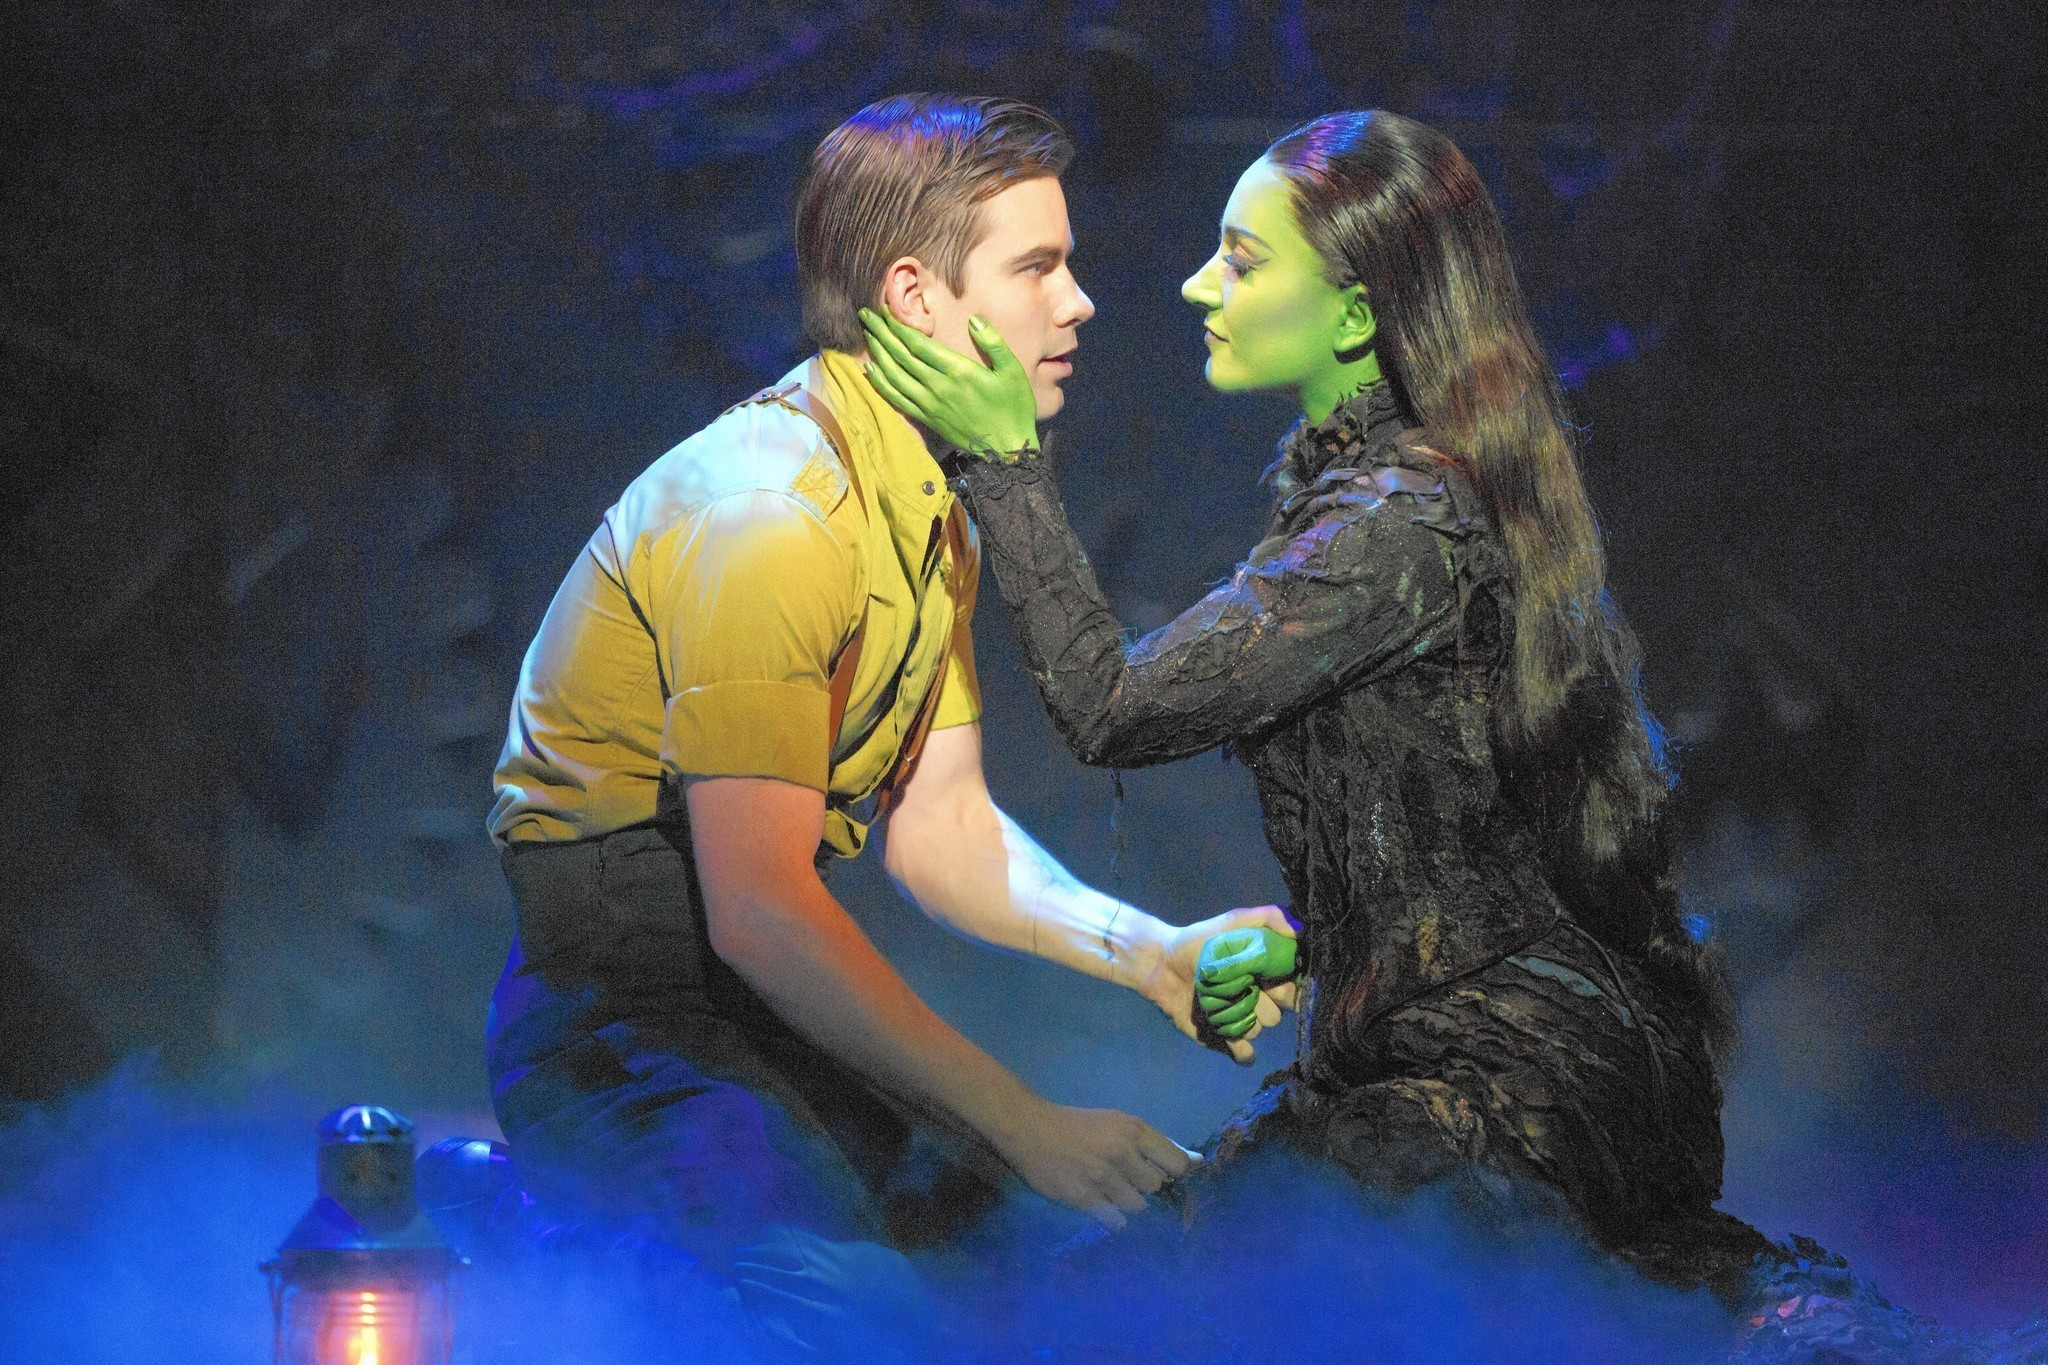 a review of the broadway musical wicked by stephen schwartz and winnie holzman The hit broadway musical wicked opened on broadway in with an all-star creative team led by stephen schwartz (music), winnie holzman (book) this review is.